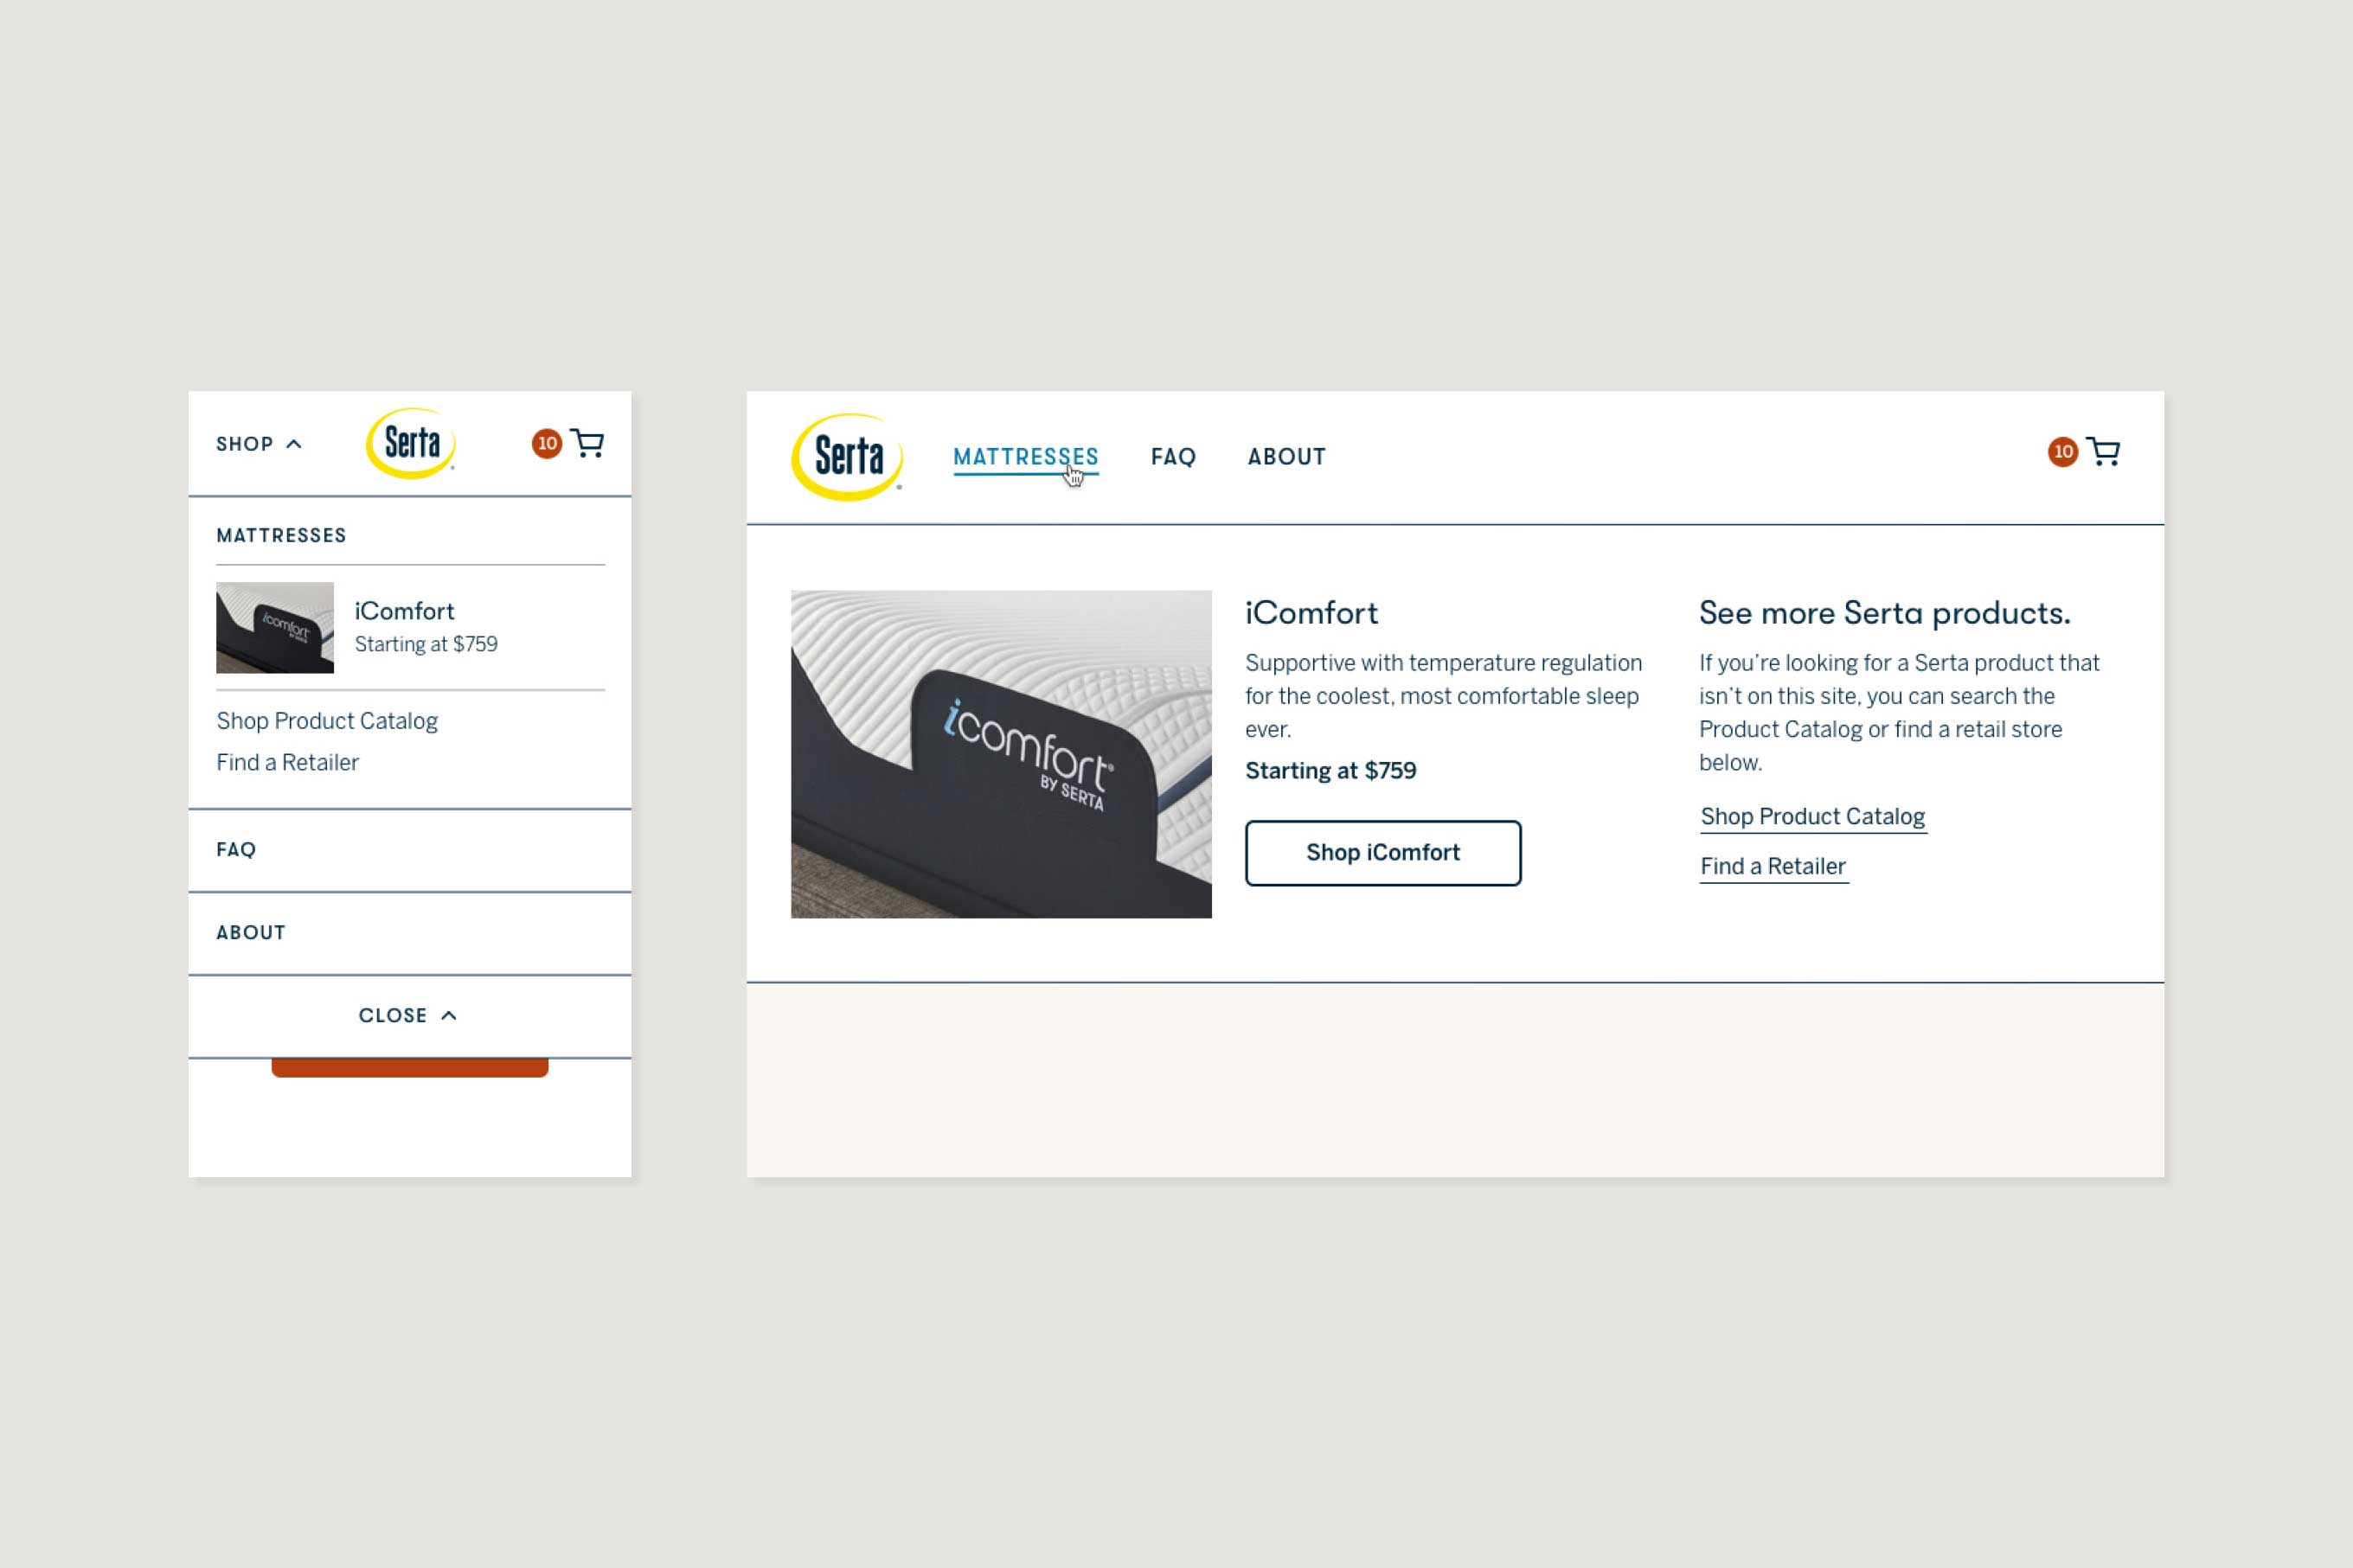 Mobile & desktop comps of the new Serta navigation menu. On mobile, elements are stacked vertically with the iComfort at the top of the stack. On desktop, the expanded navigation menu is divided into three columns, with two dedicated to the iComfort.